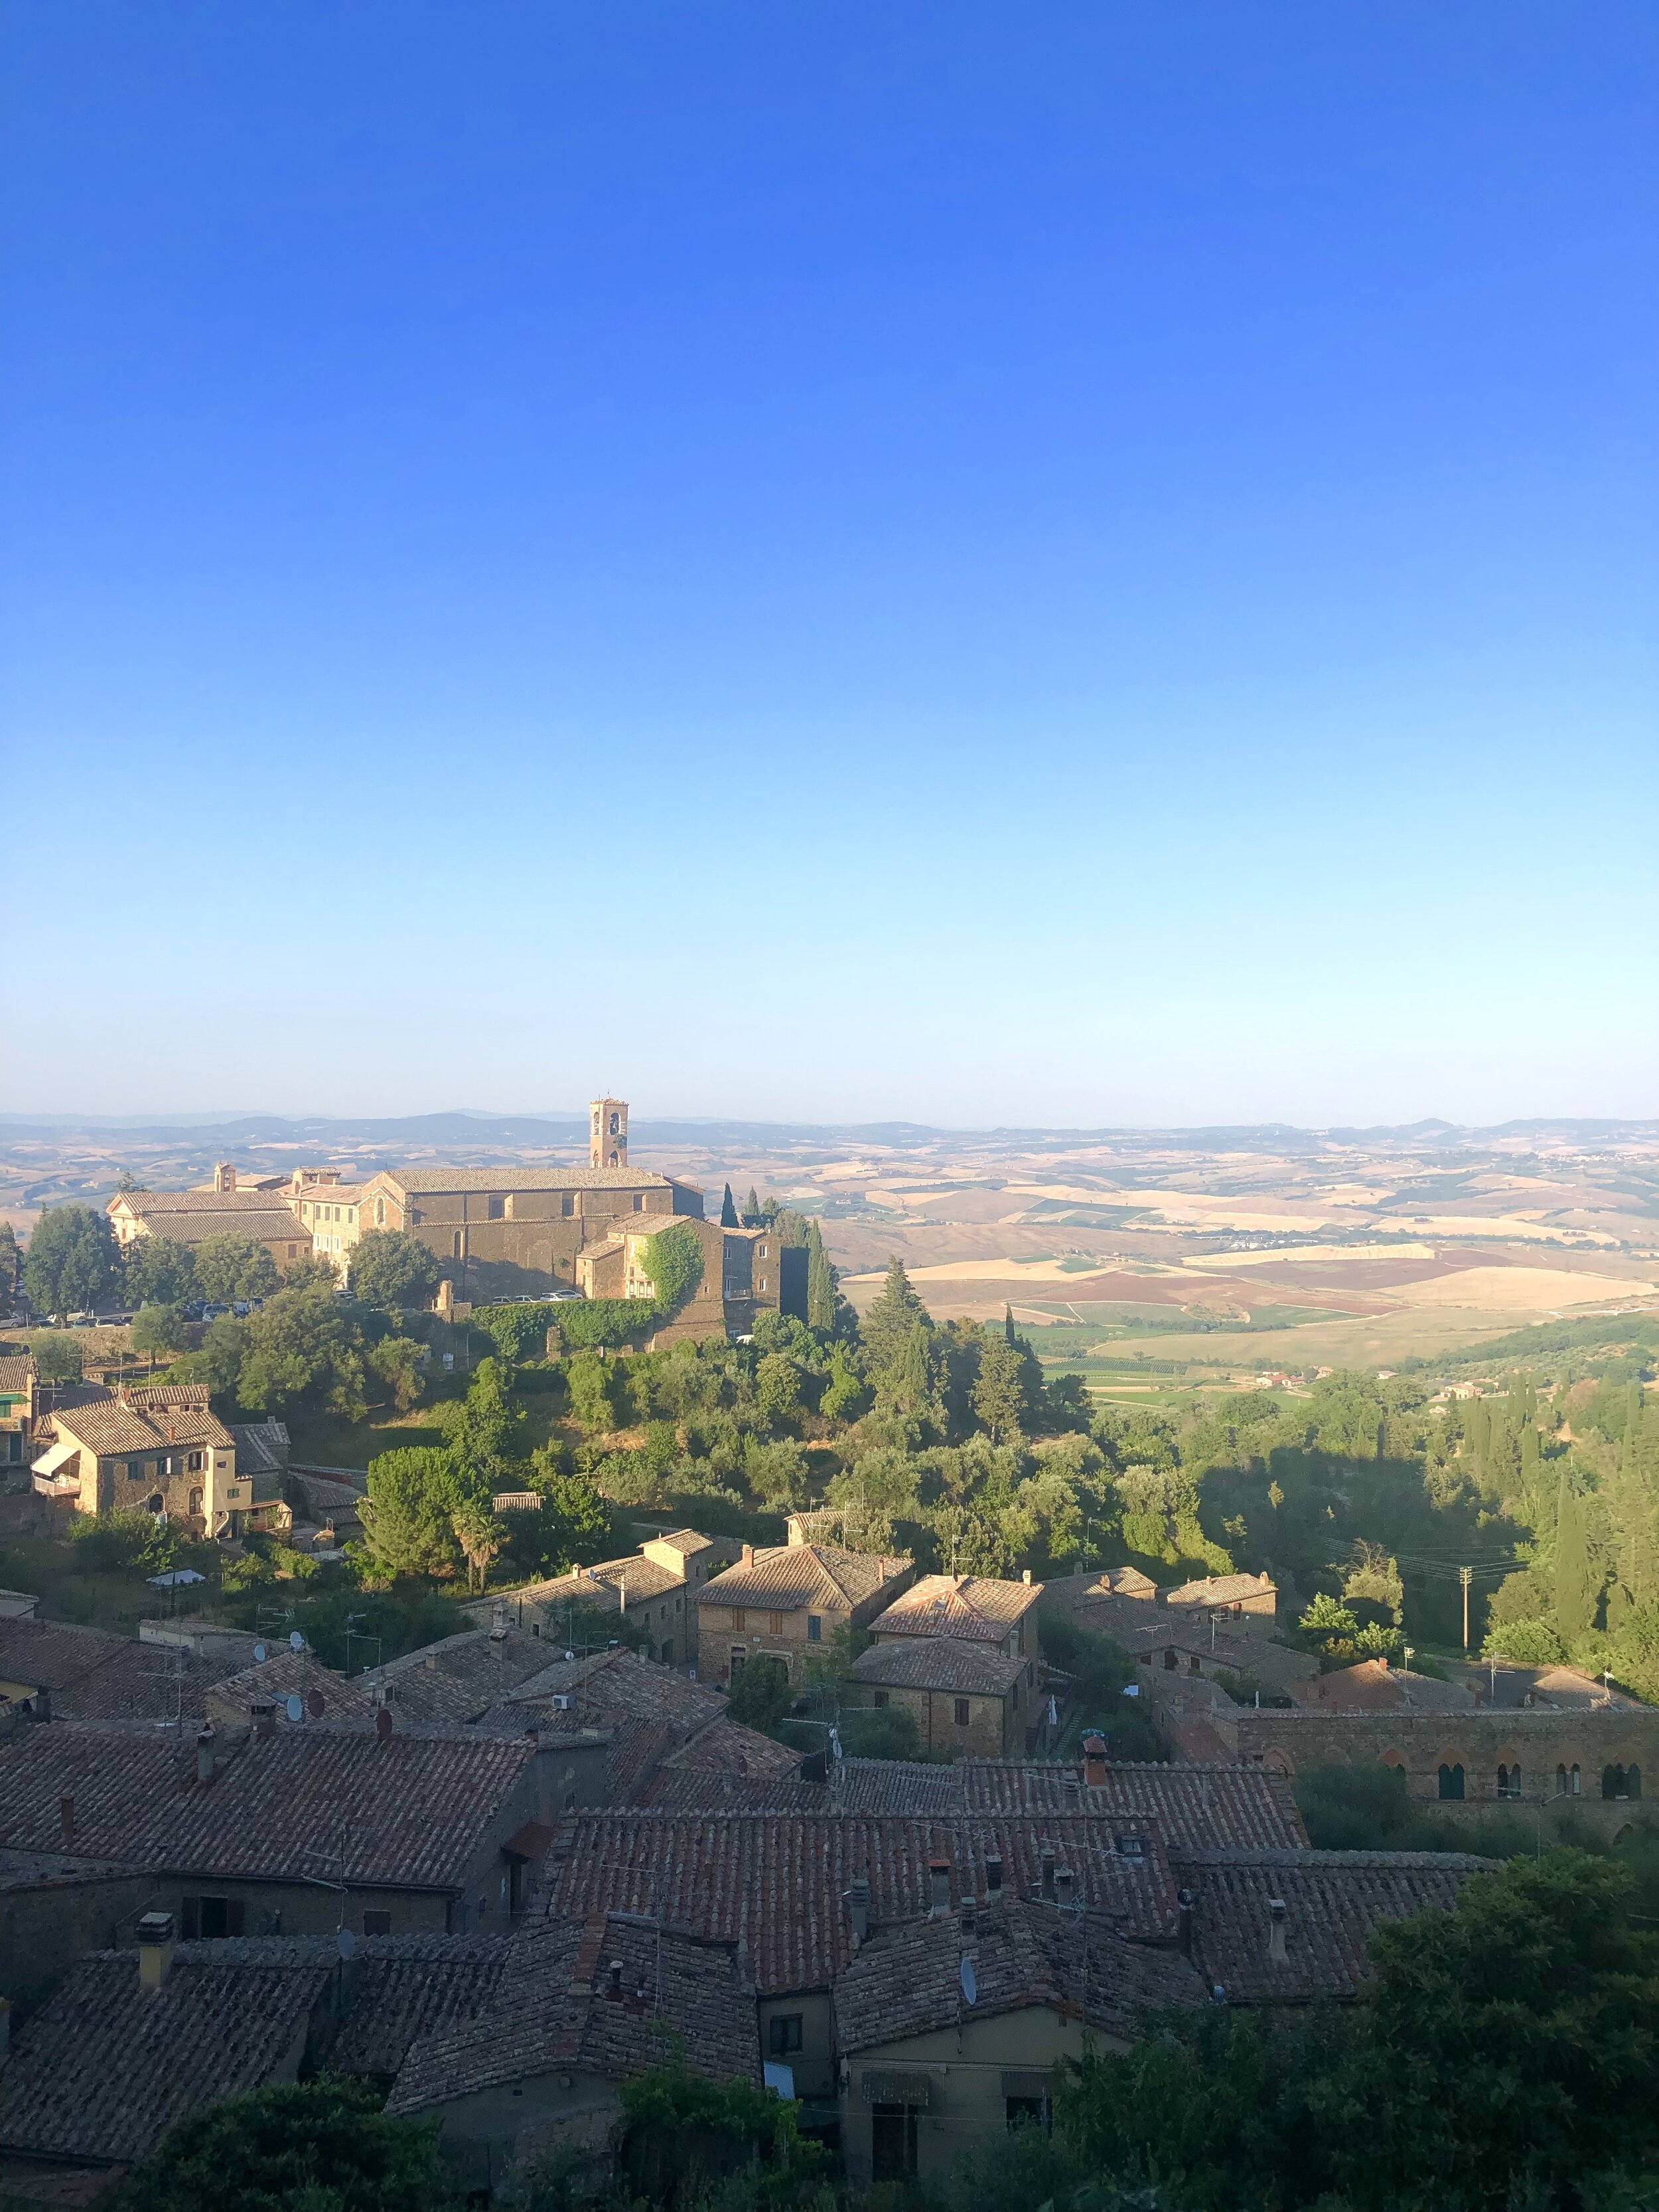 """- Montalcino - This small village is the home of the Brunello wine, which is considered one of the best wines there is. So make some time to visit Castello Banfi. You will be able to visit the winery as well as enjoying a set 5 course meal while watching the sunset. Obviously, the meal is paired with Brunello wines.San Gimignano - This UNESCO site is called the """"Manhattan of the Middle Ages"""" for its many towers. Don't forget to try the gelato at Gelateria Dondoli.Montepulciano - Montepulciano is larger version of Montalcino, packed with great resturants, wine bars and art galleries. Its known for Vino di Nobile di Montepulciano and the local thick pasta, called Pici pasta.Siena - Start the day by visiting Piazza del Campo, the big square in the middle of the city. Siena is larger than most of the other villages in Tuscany. Which means there is a lot more options for shopping here. So if you are looking for something local to bring home, this is where you can find it.Florence - One of Italy's largest city, so you will not get that small Tuscan Village feel here. Although there is lots to do and see. If you like sculptures and architecture you should not miss Florence! On the way to or from Florence, you can also stop to do one of the many cooking courses surrounding the city. On these courses you will learn how to make your own pasta, and make a true Italian meal."""